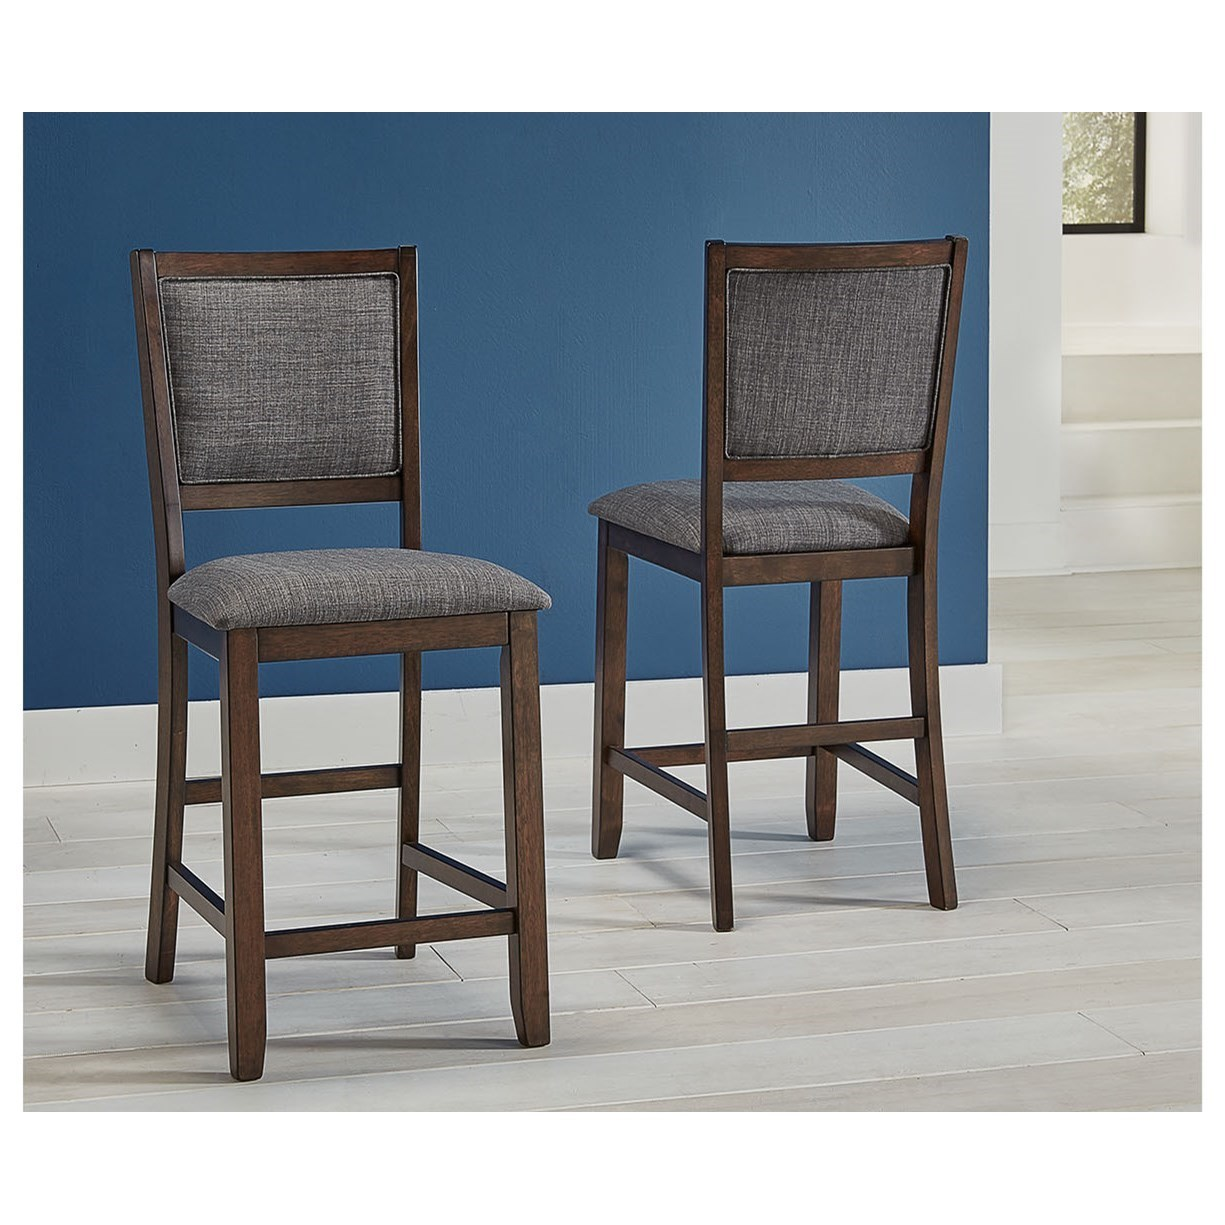 Chesney Upholstered Bar Stool  by A-A at Walker's Furniture